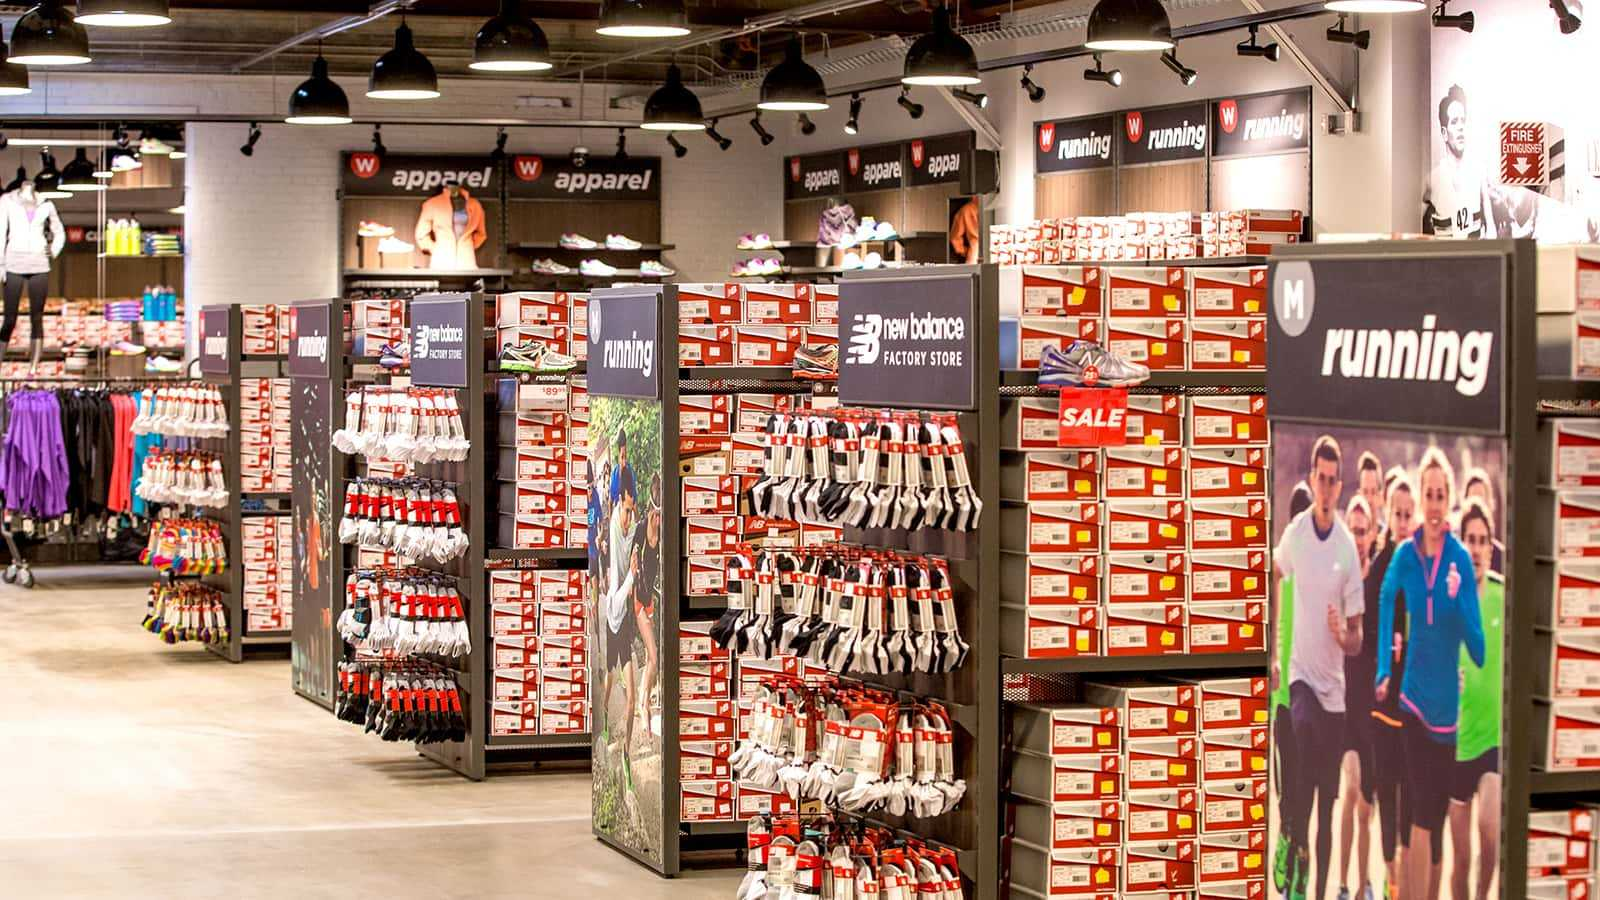 New Balance factory stores 2014 shoe displays.